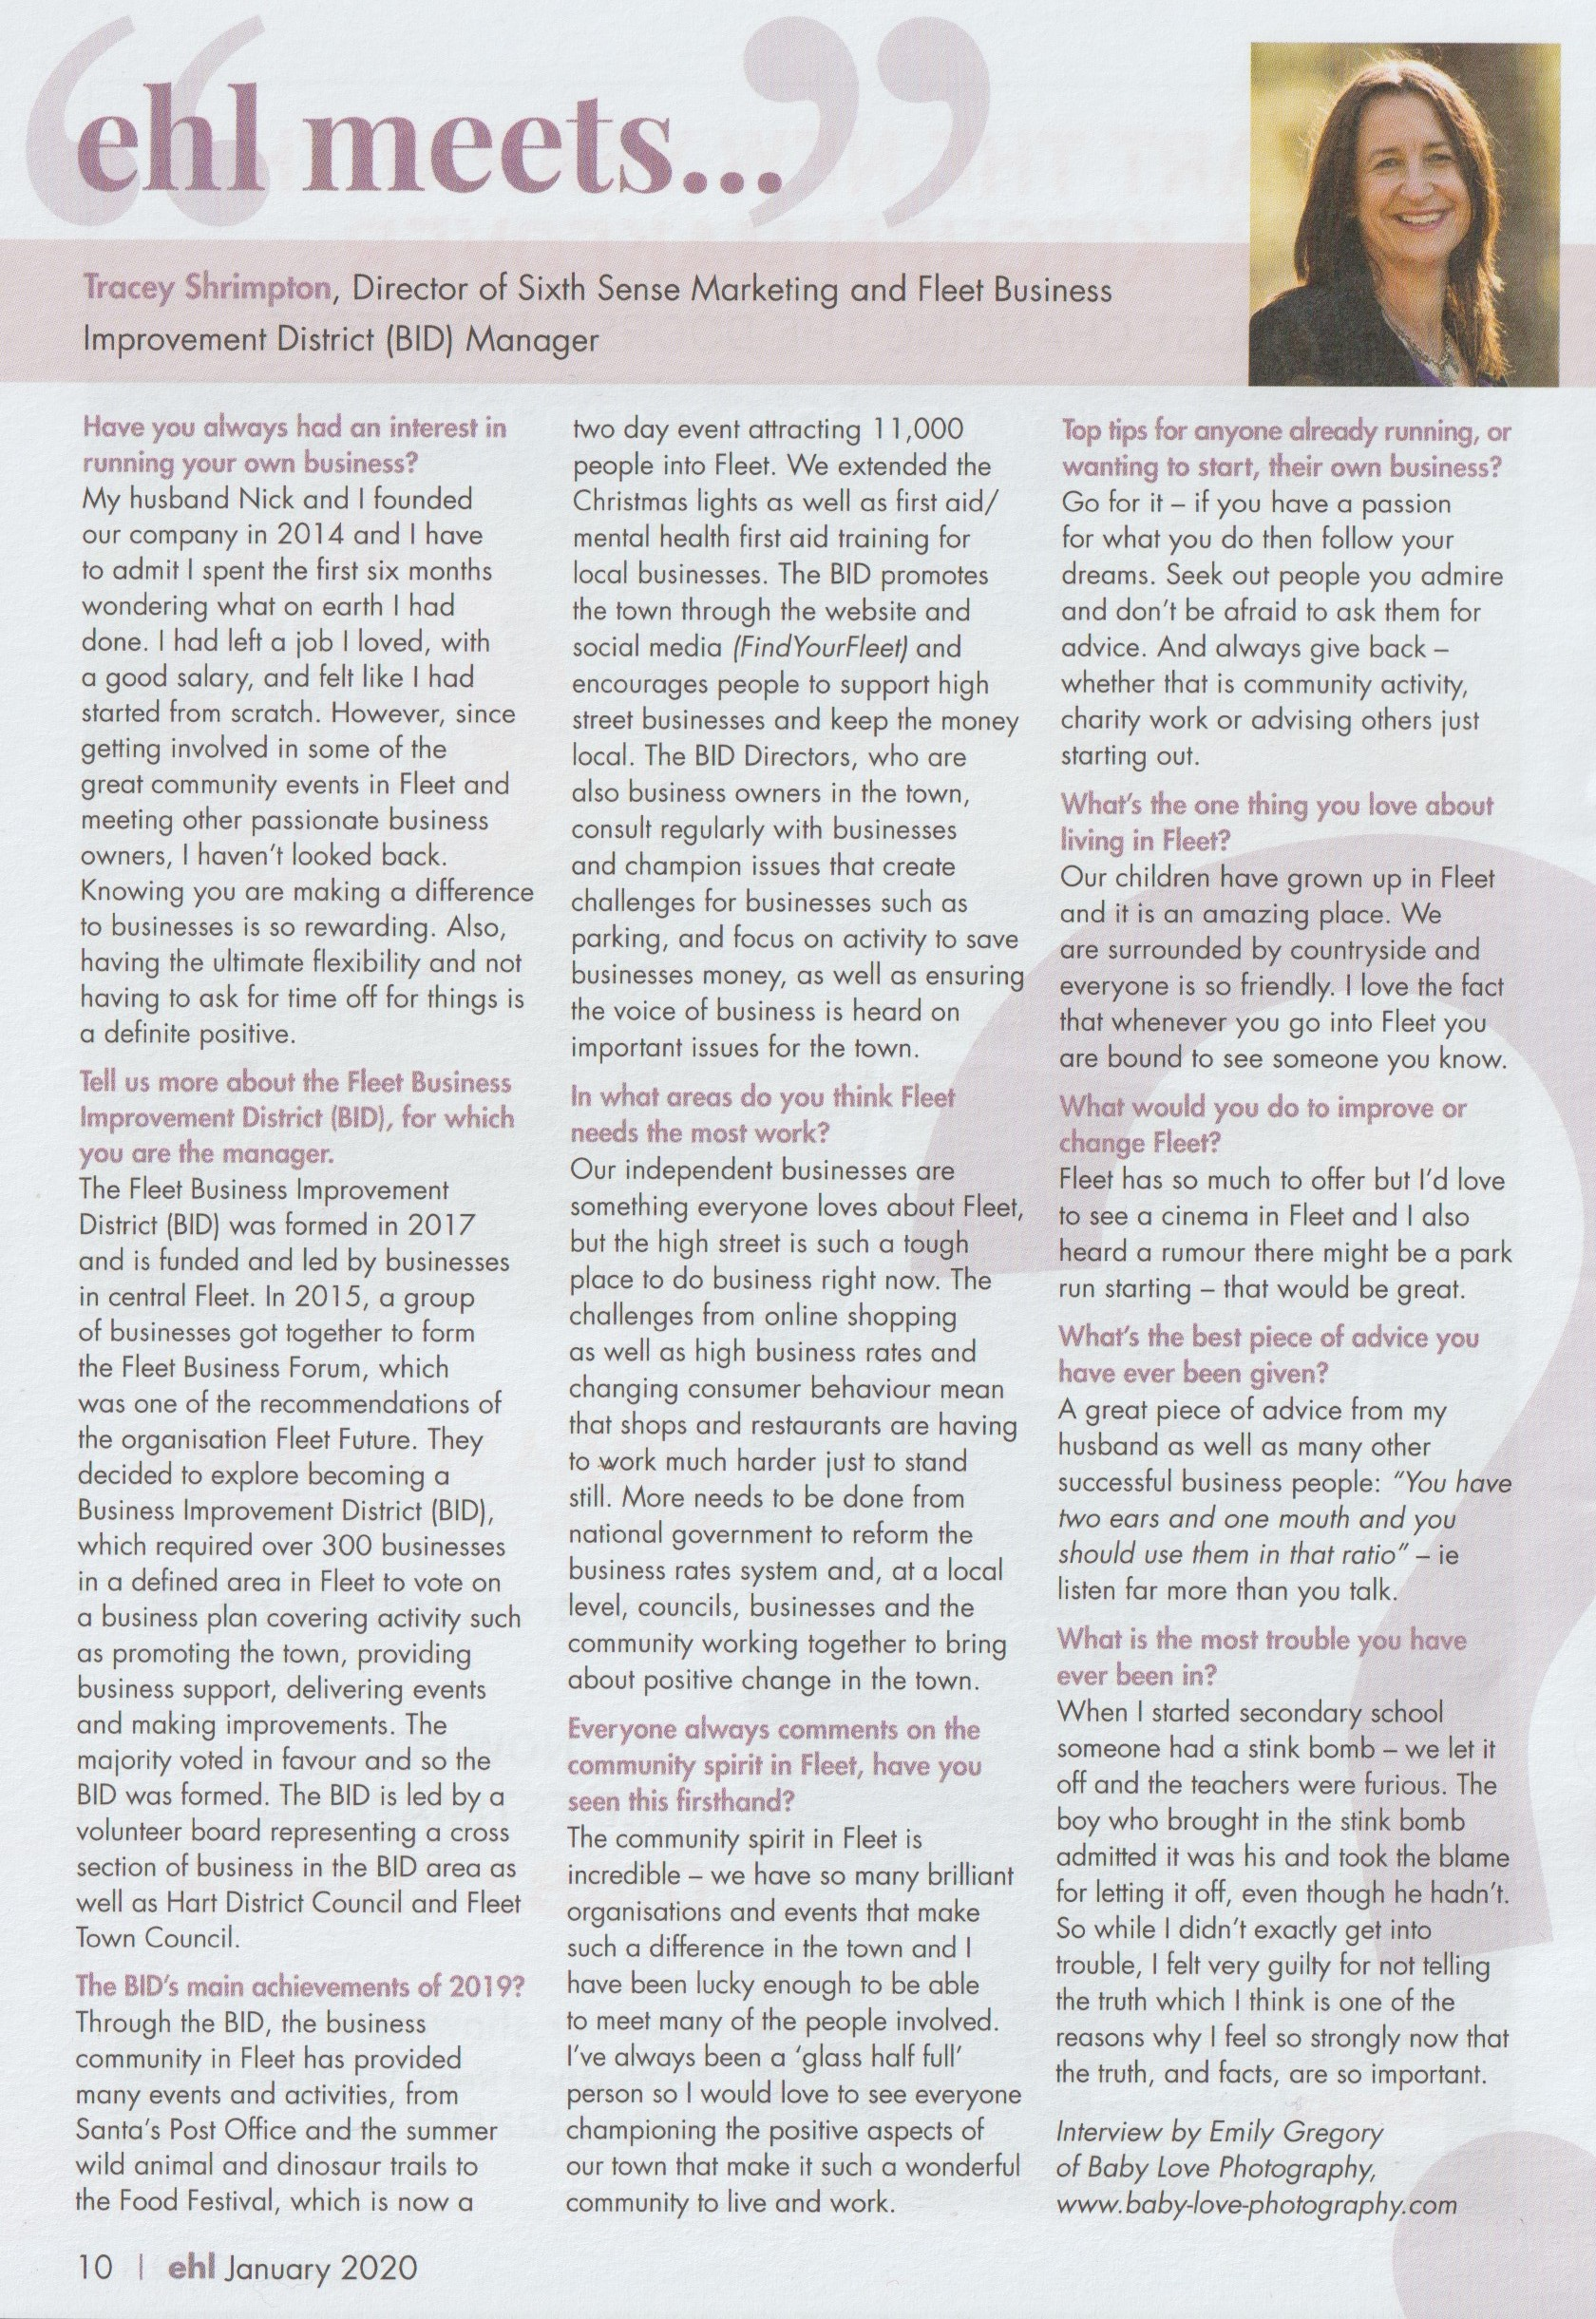 Tracey Shrimpton interview with Elvetham Heath Life